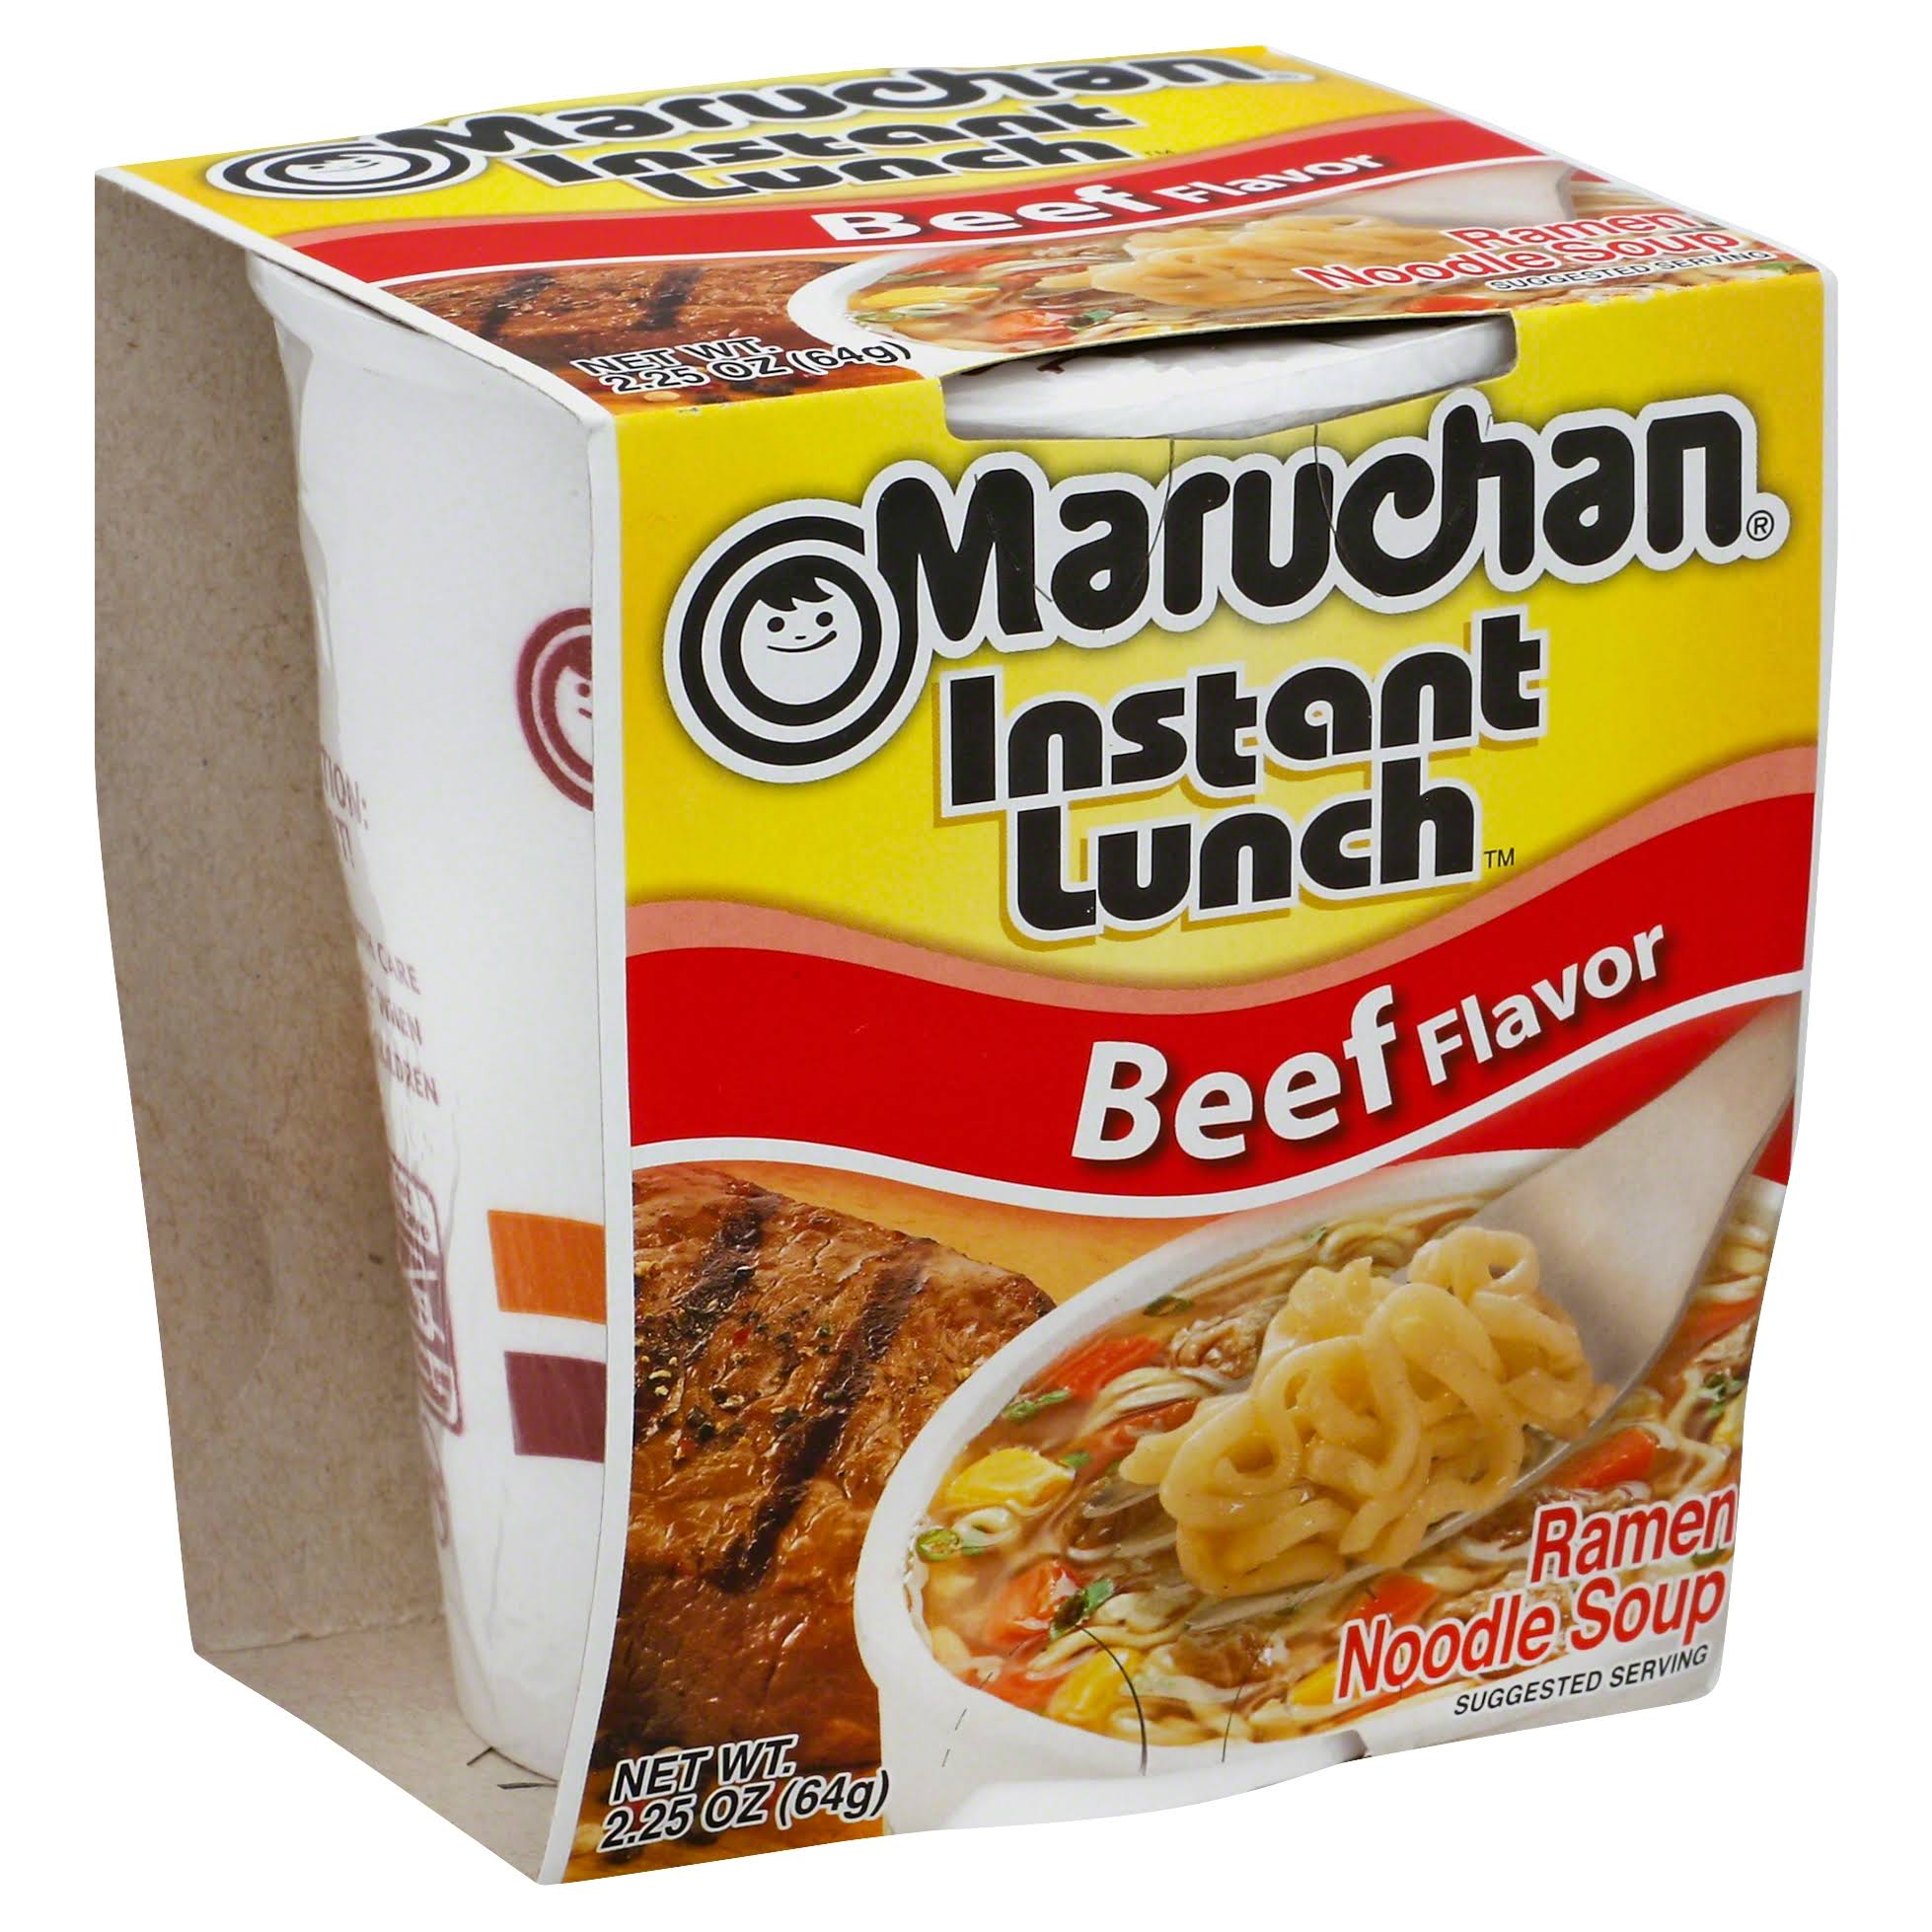 Maruchan Instant Lunch Beef Flavor Ramen Noodles with Vegetables - 2.25oz